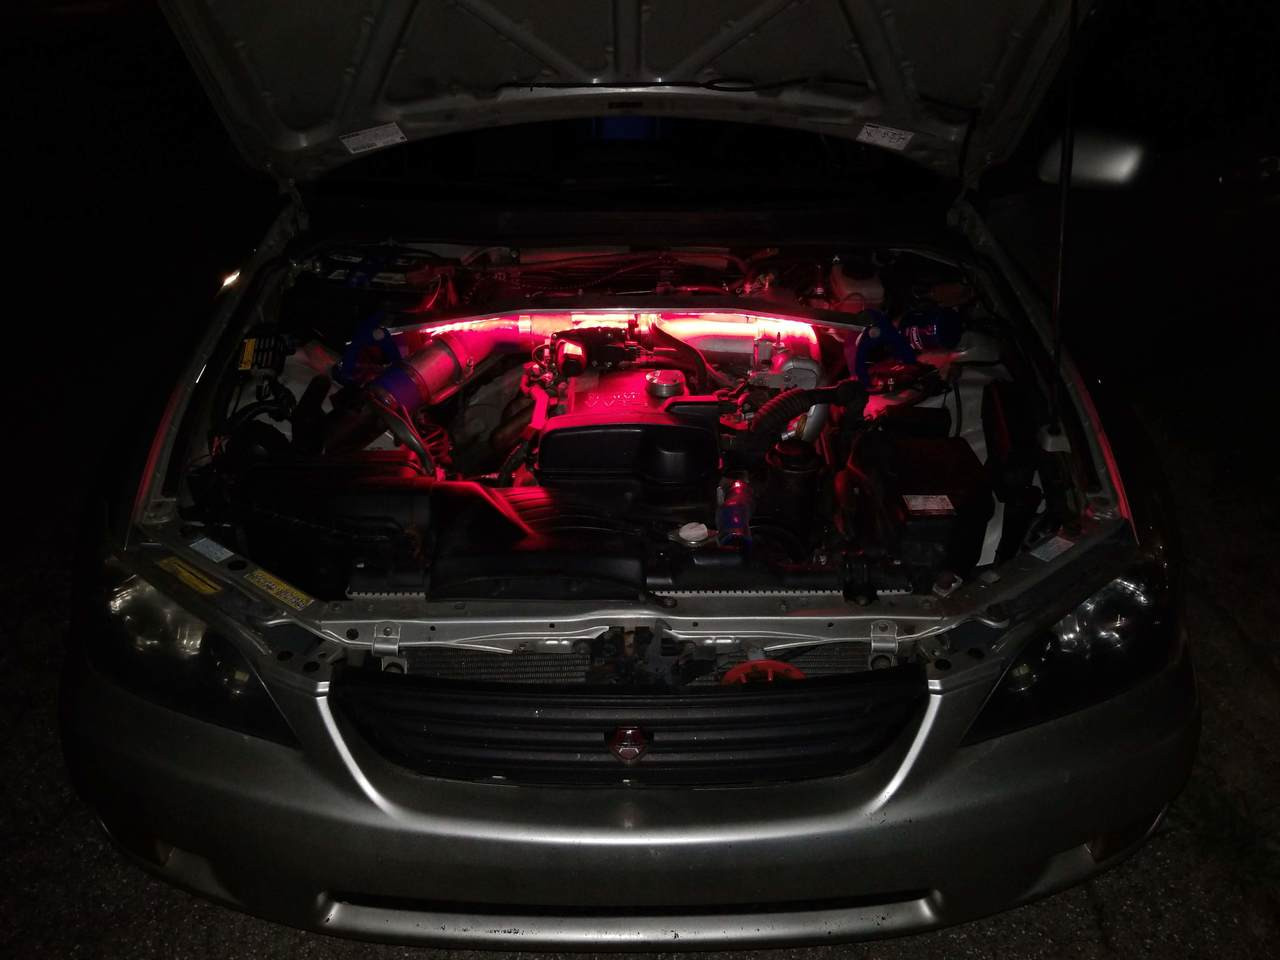 Universal Strut Bar LED Light Kit